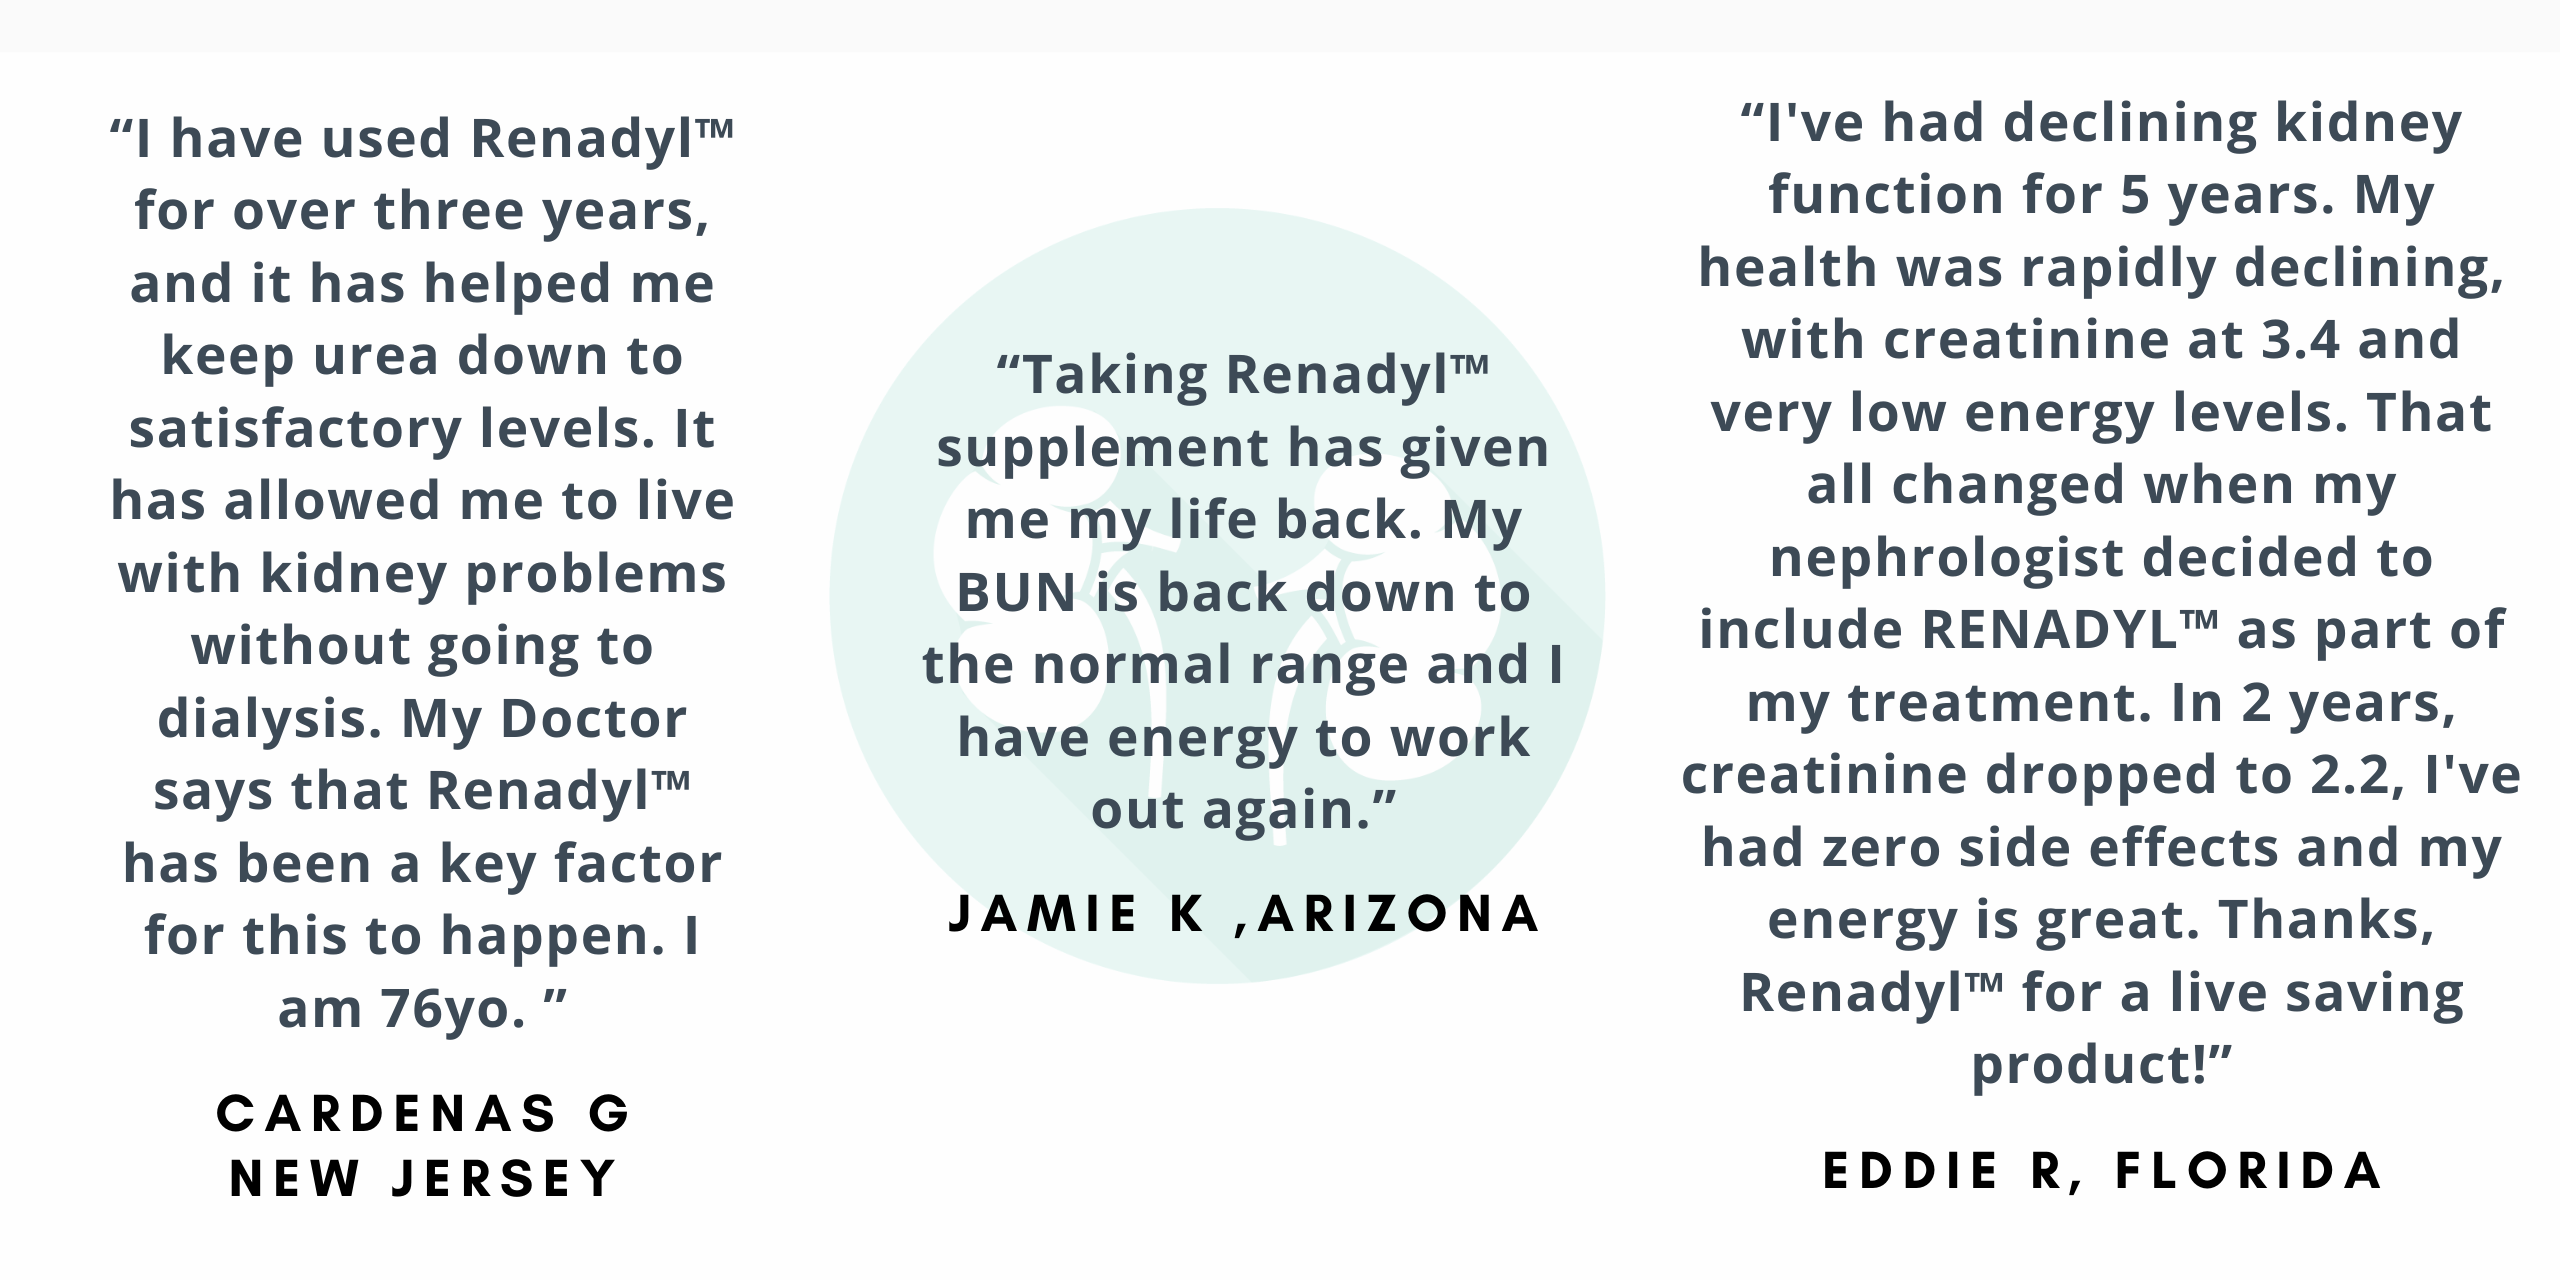 renadyl-kidney-health-testimonials-review-success-stories-jul.png